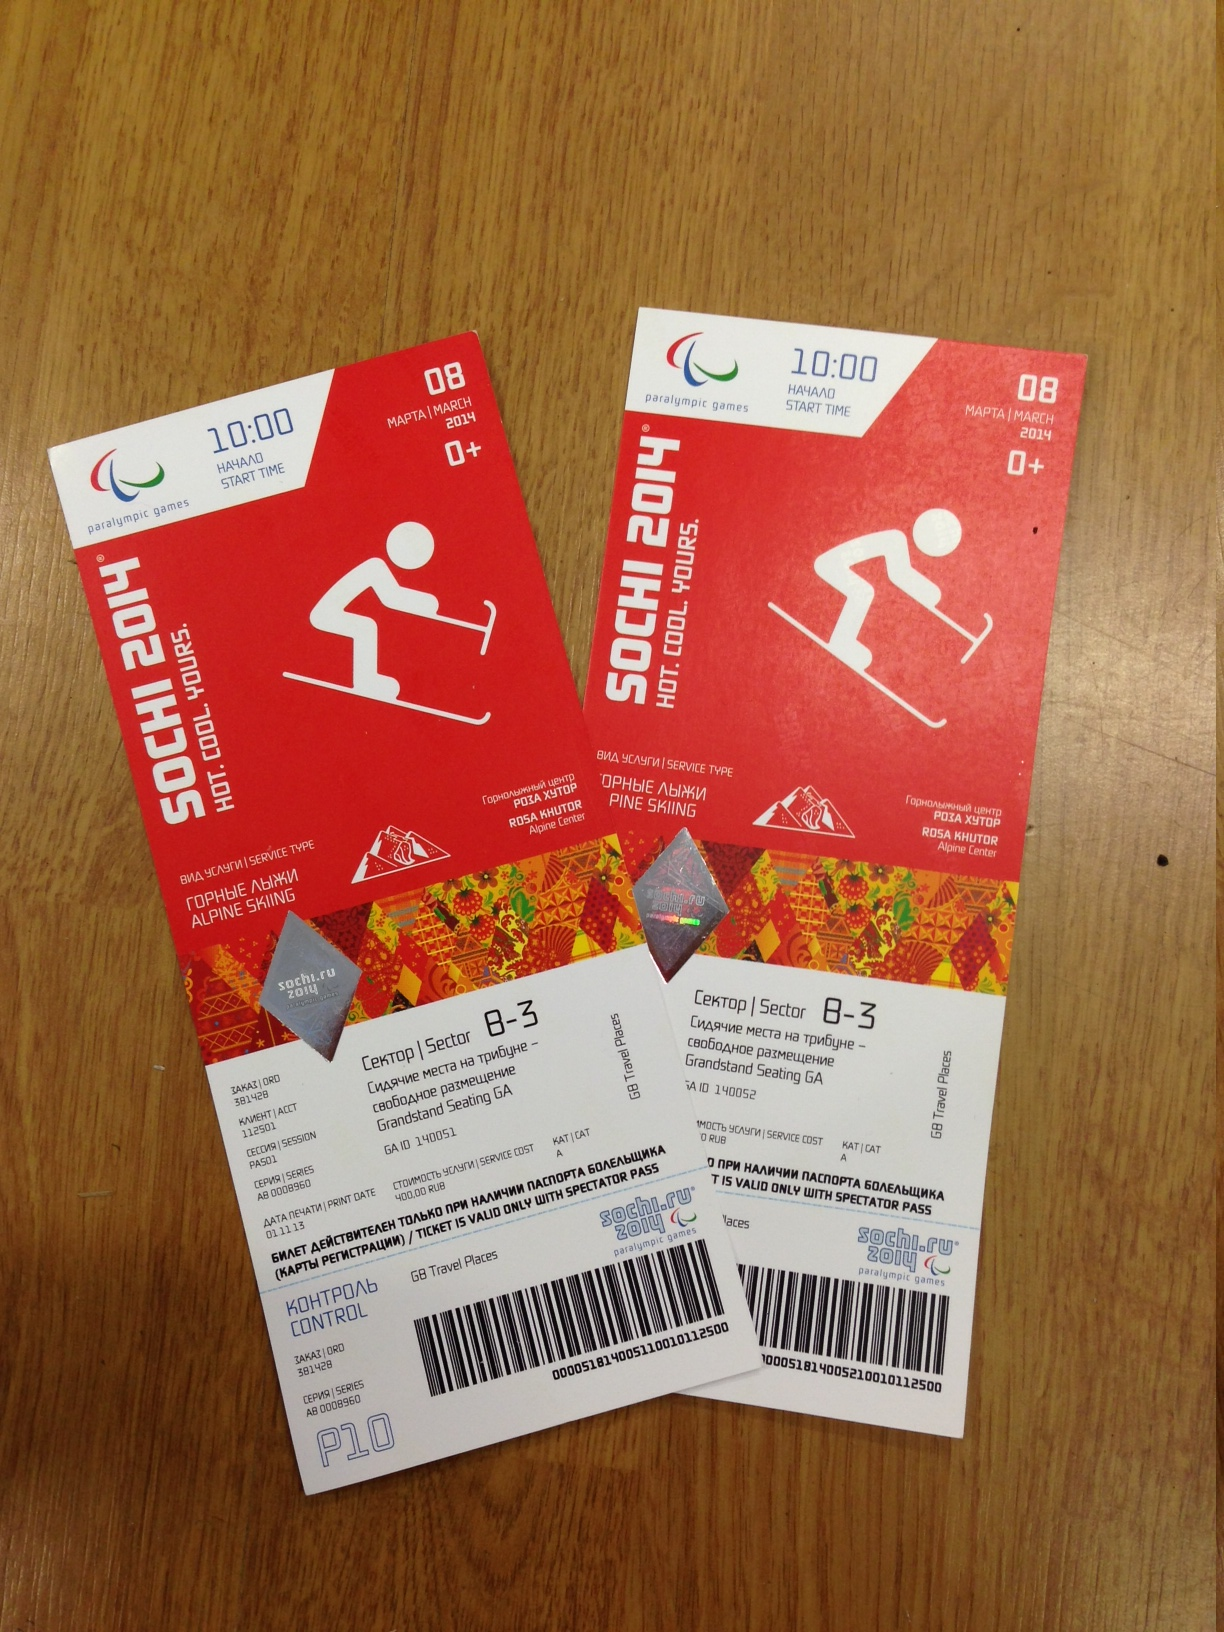 A photo of two tickets for the Paralympics